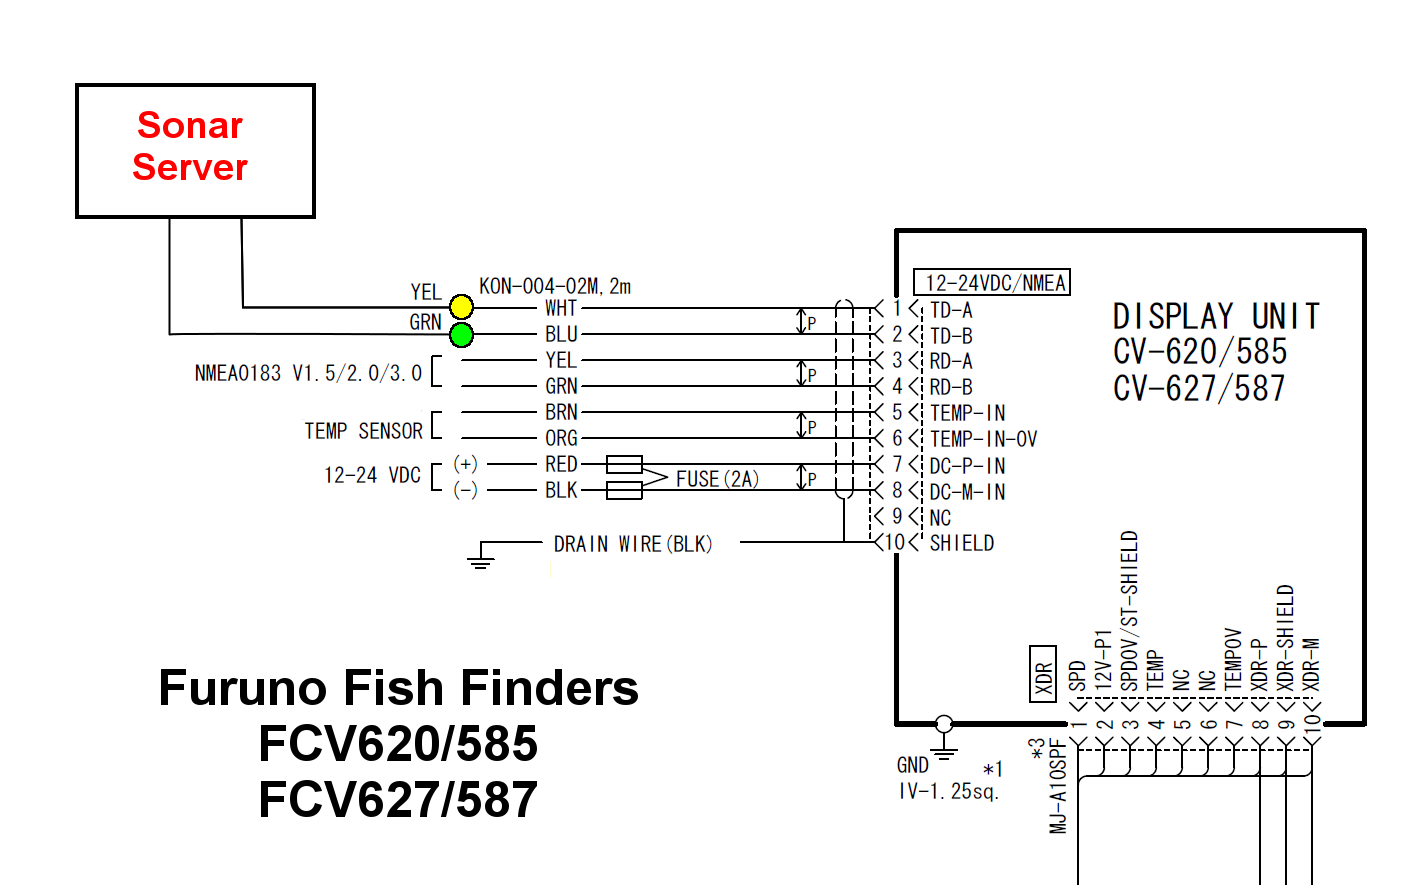 Interfacing to Furuno Fish Finders Sonar Server